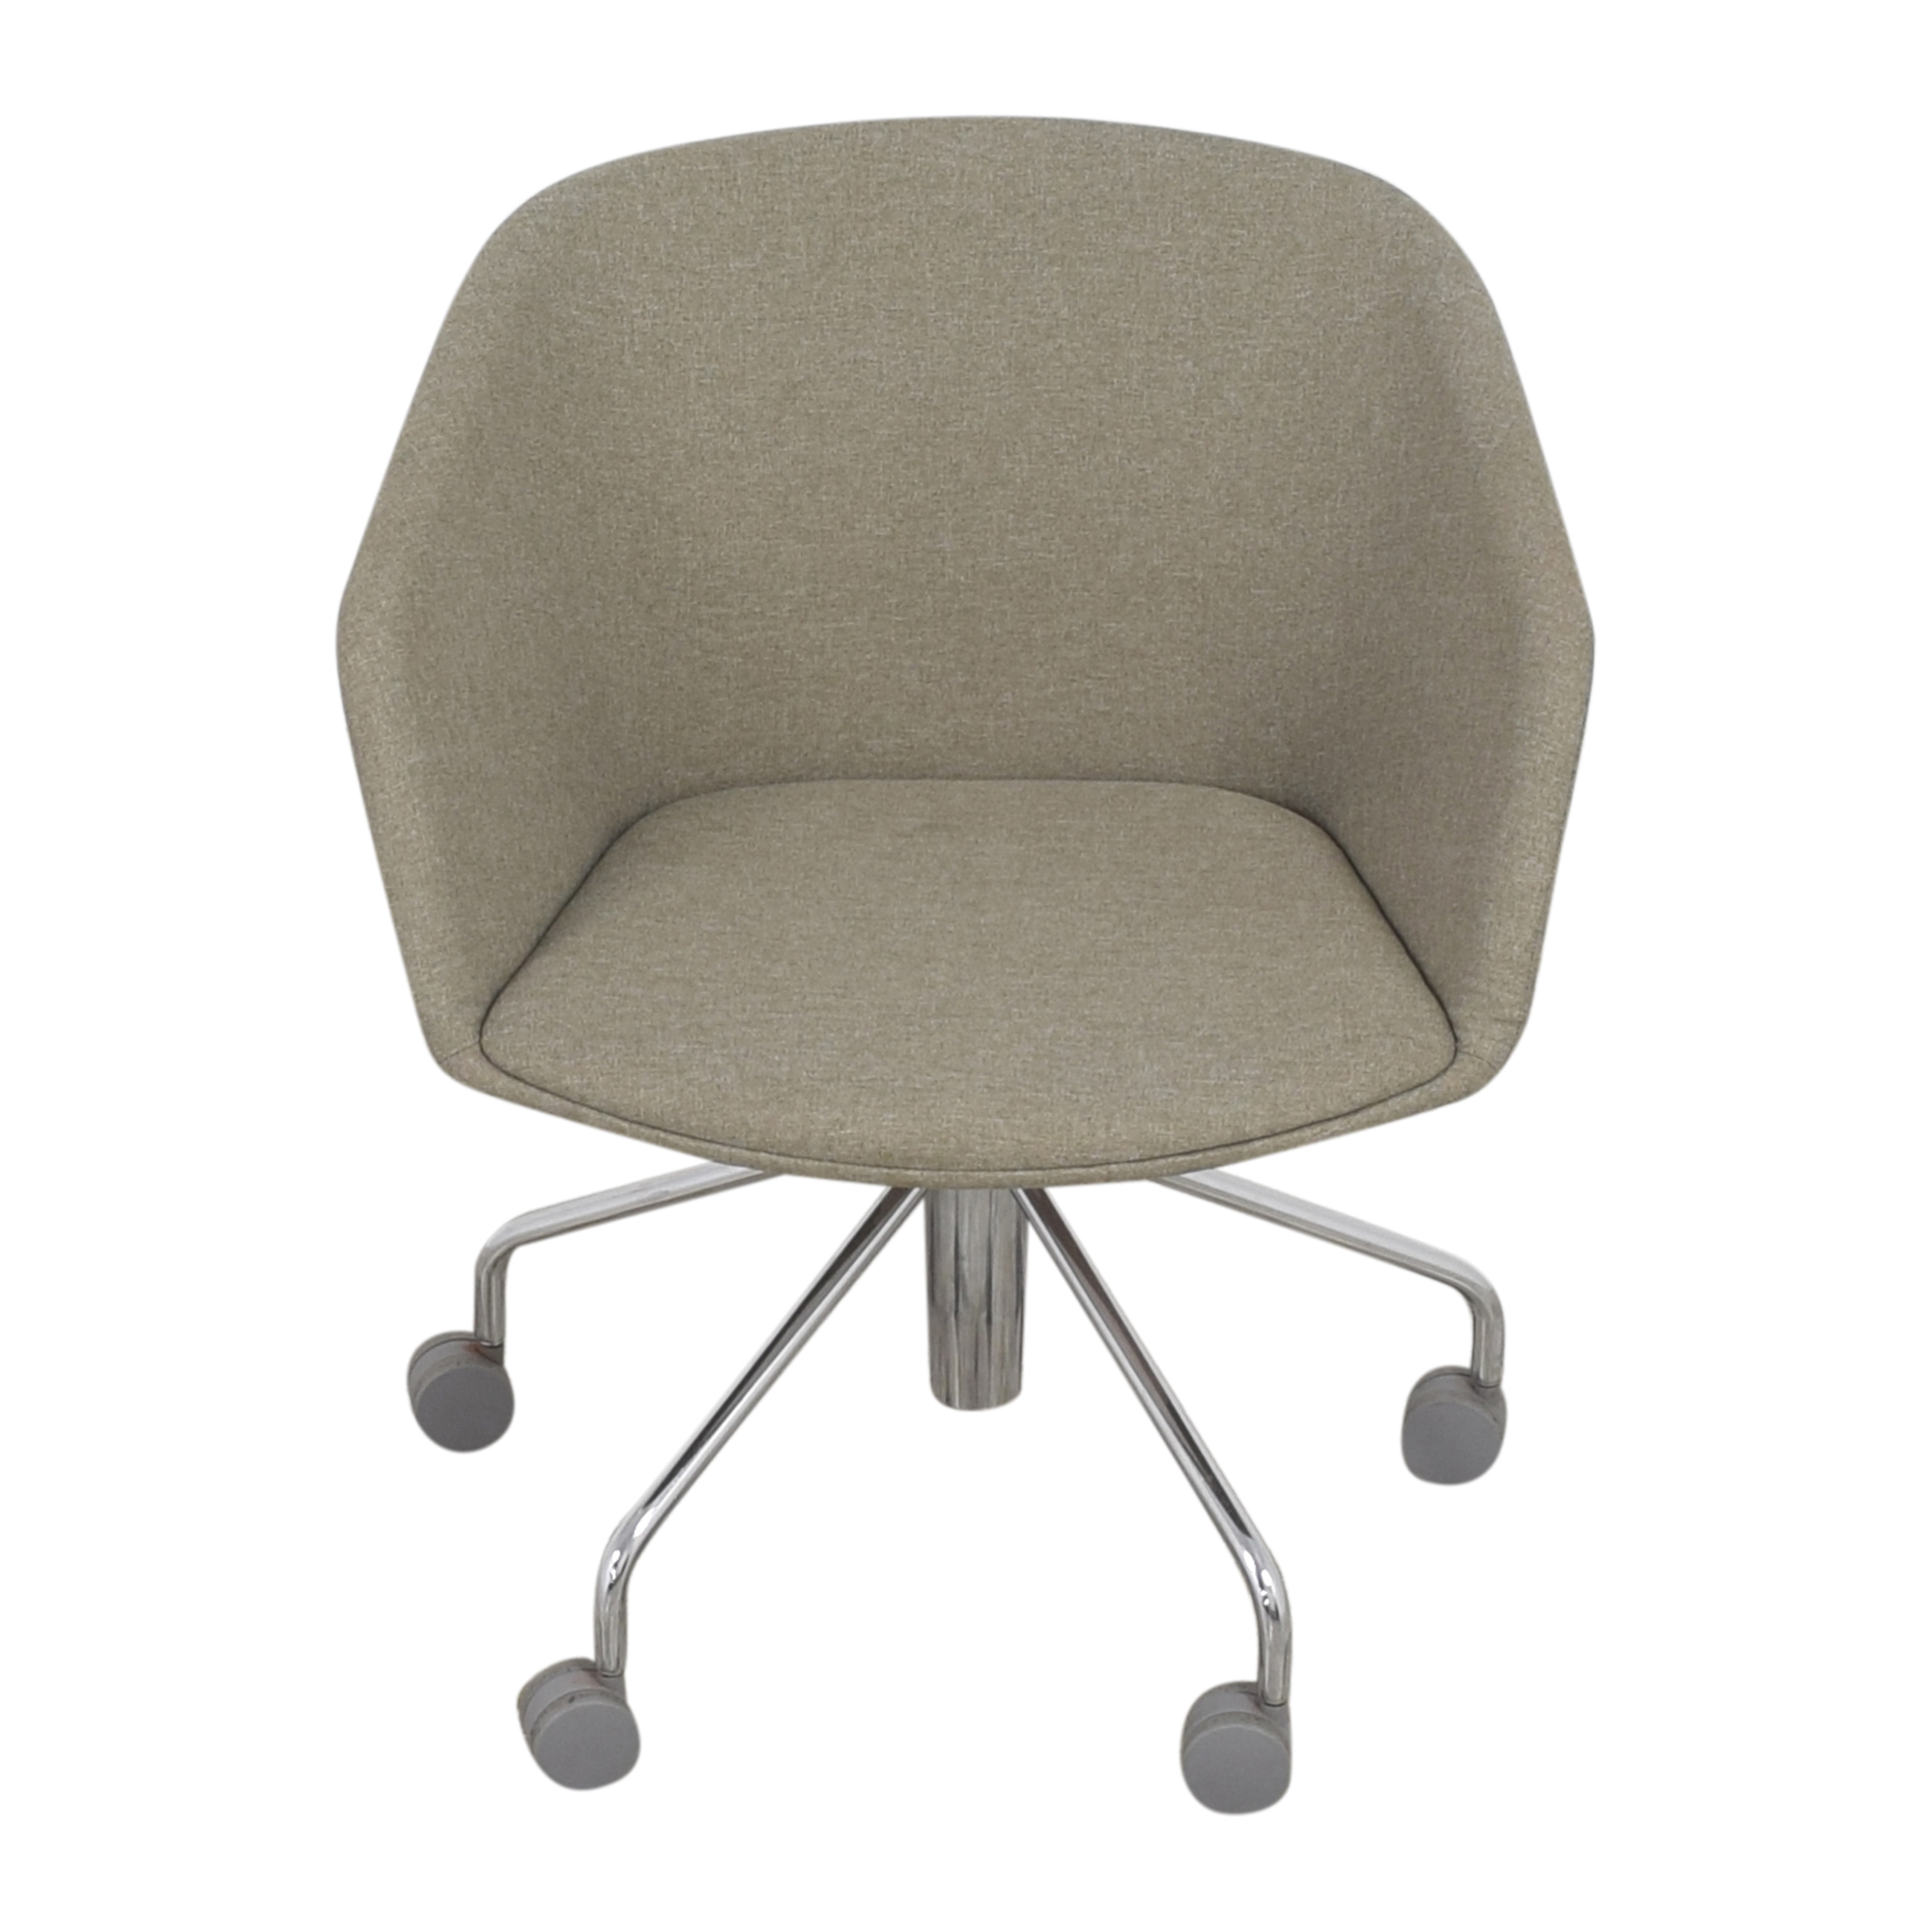 buy Poppin Pitch Meeting Chair Poppin Home Office Chairs